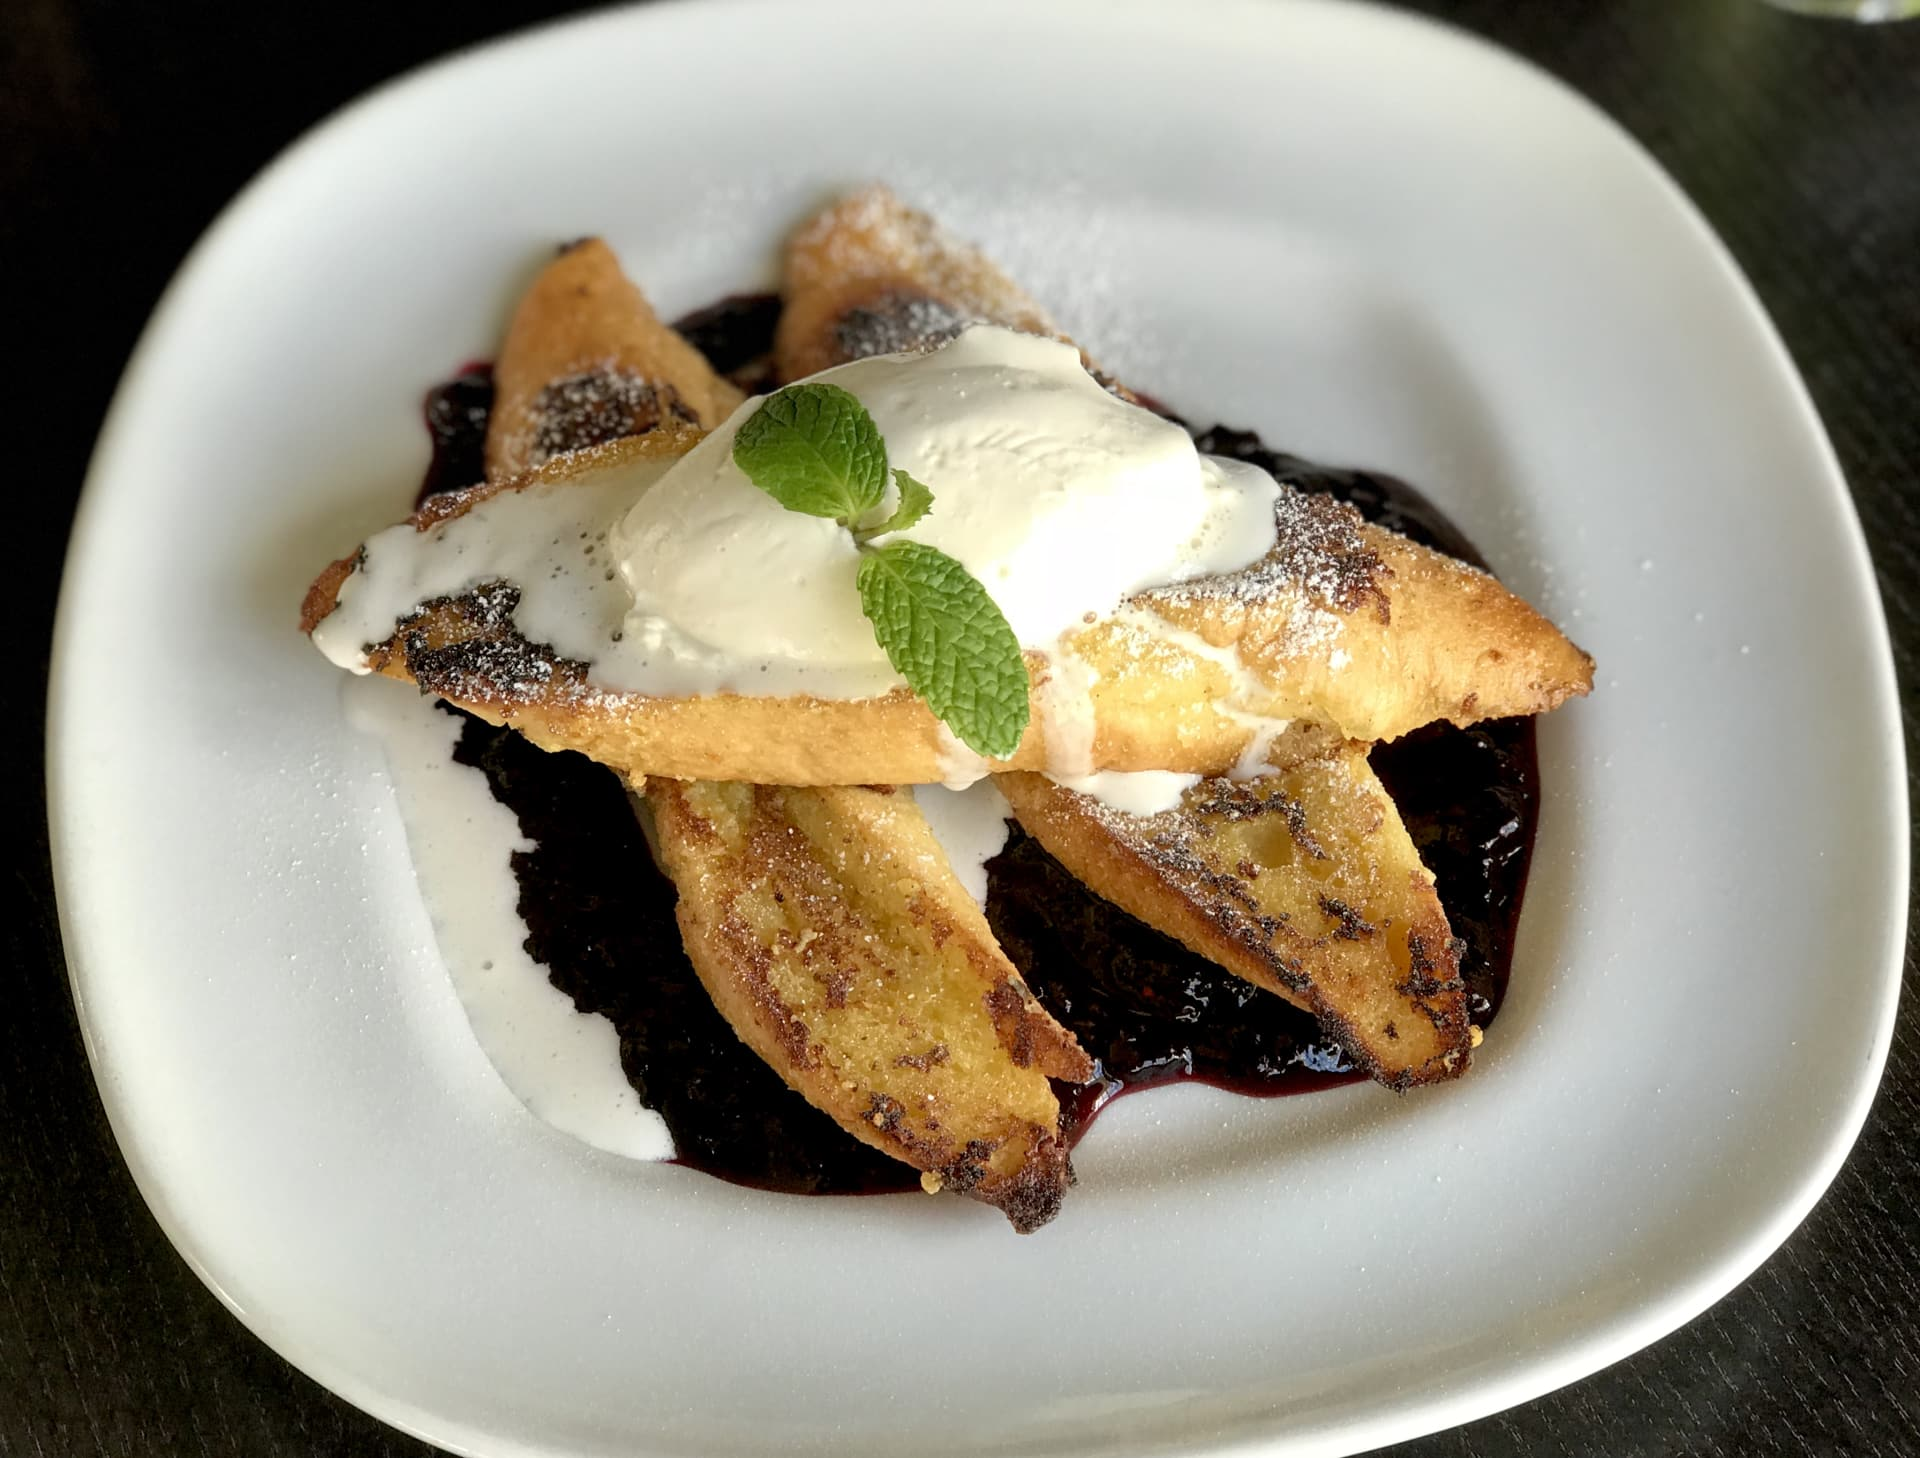 Vanilla Dipped French Toast w/ Jumbleberry Topping & Fresh Whipped Cream